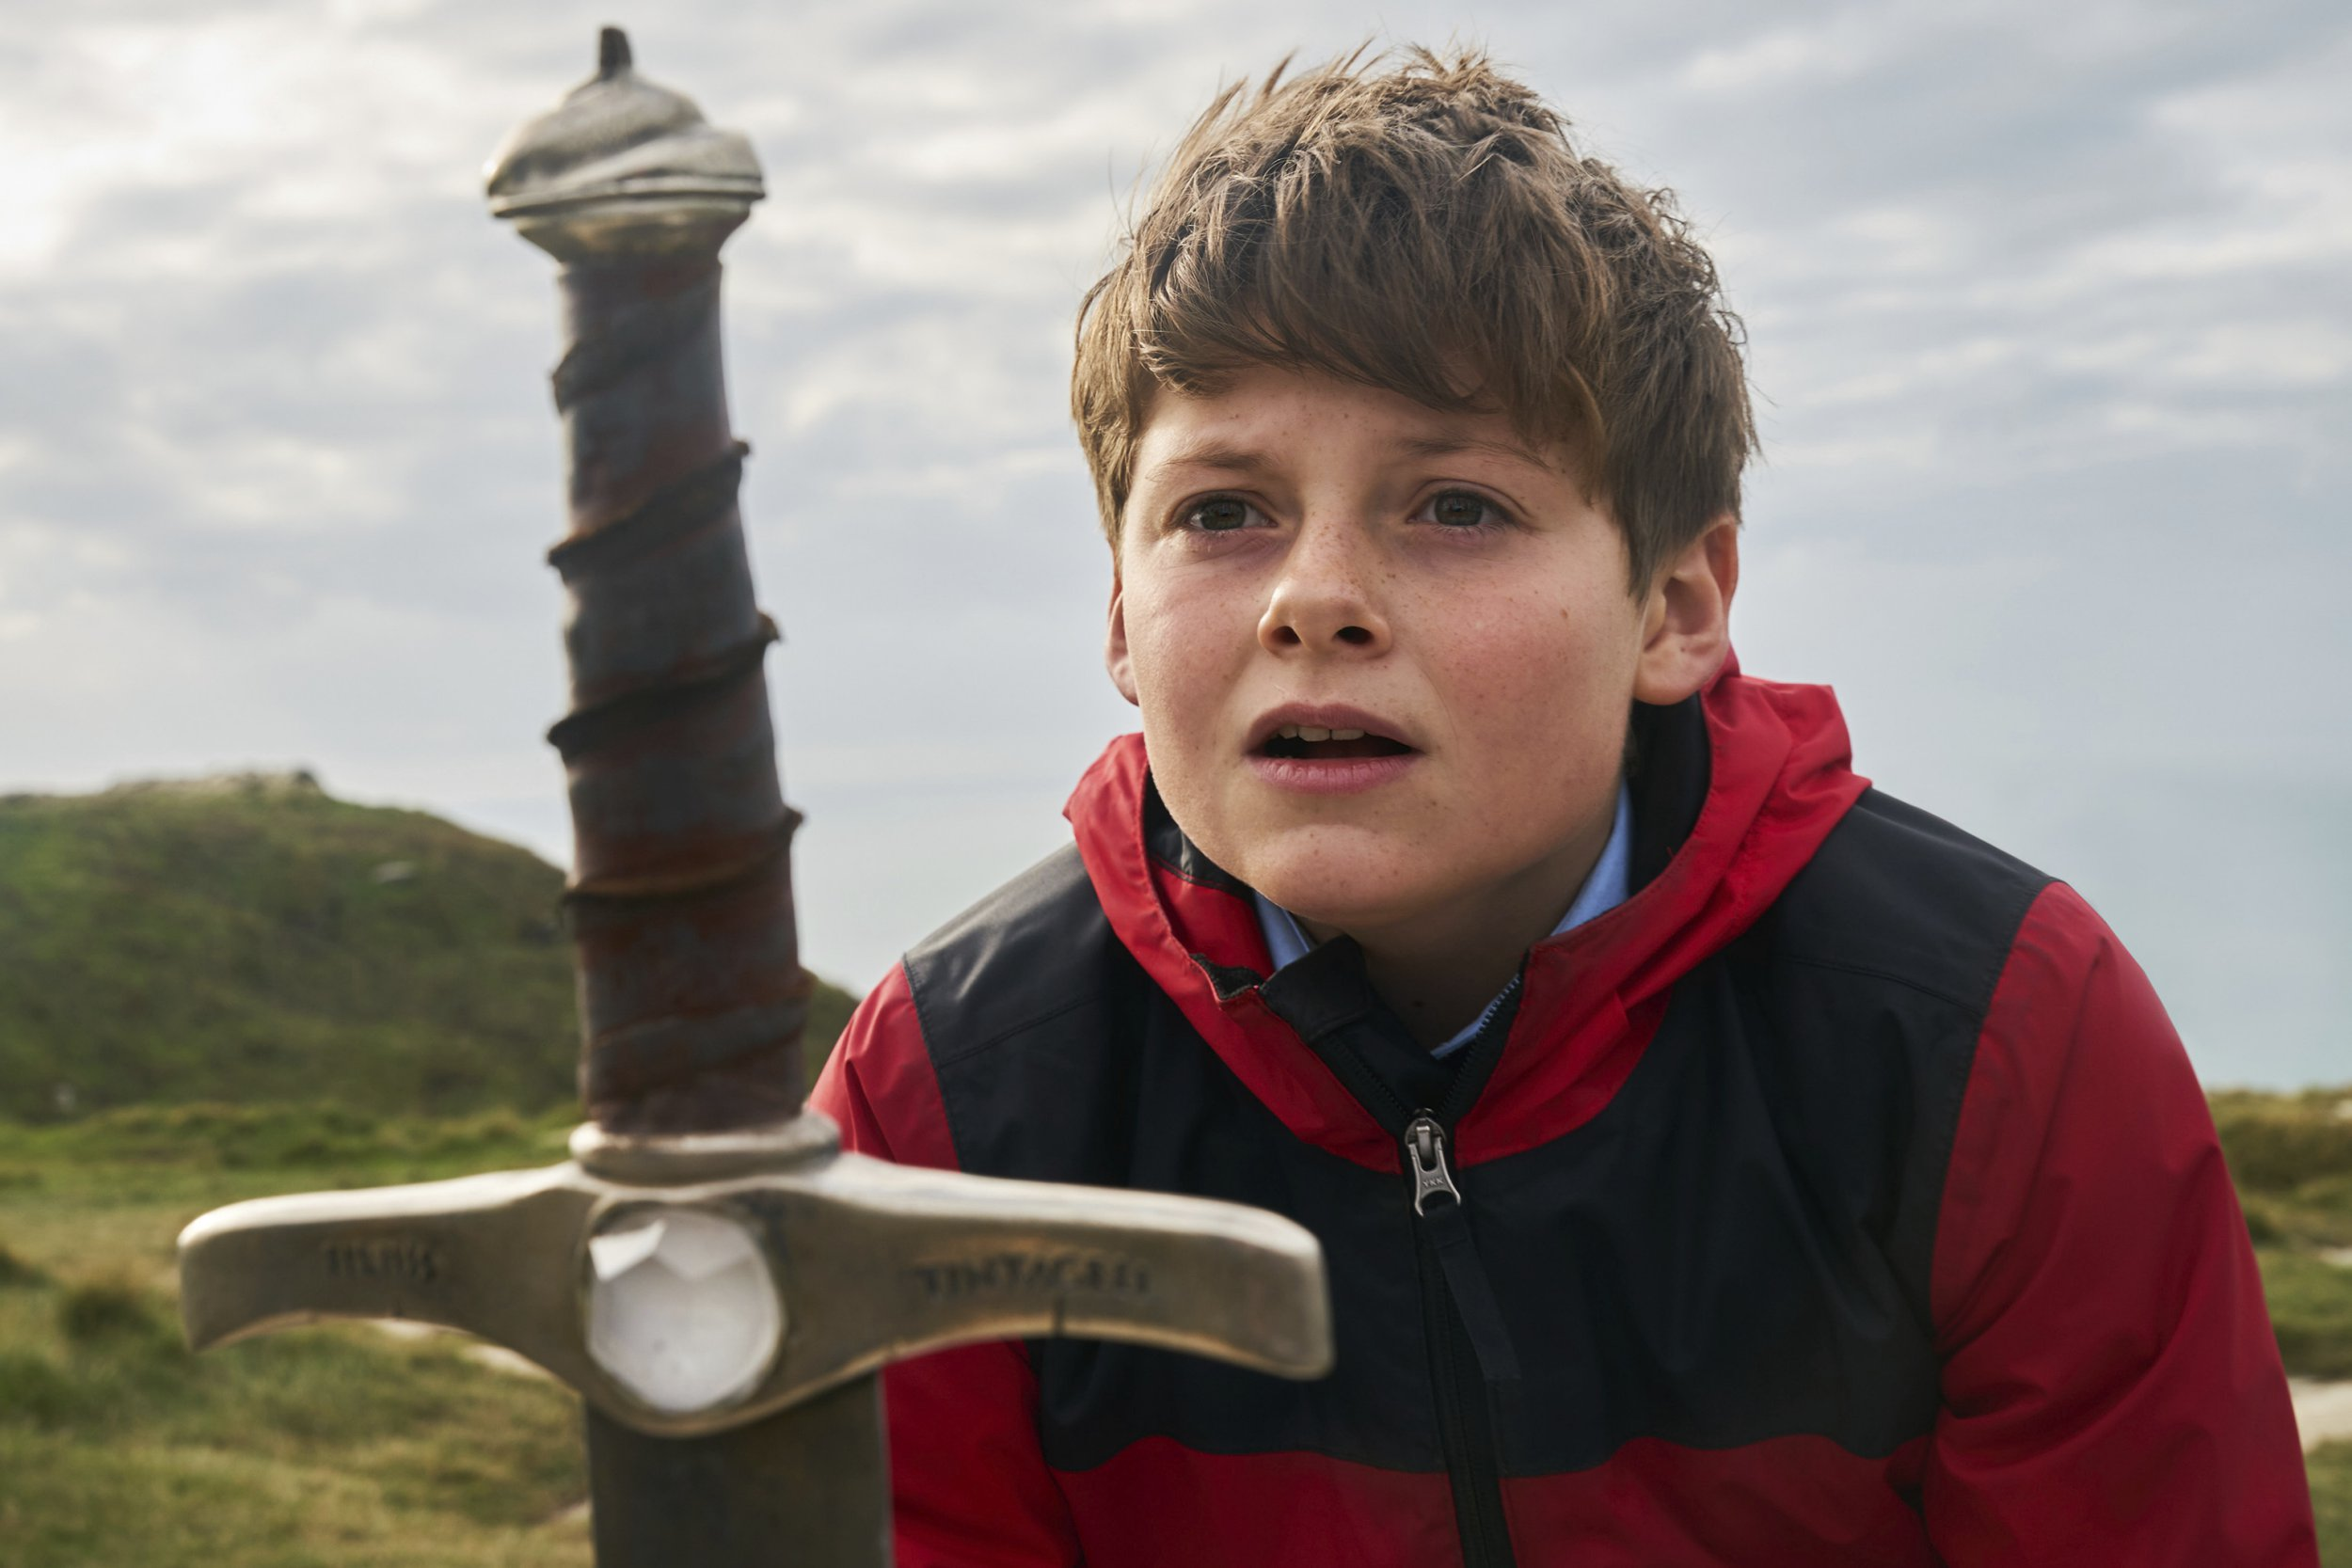 The Kid Who Would Be King cast, trailer, release date and what Disney film it is based on?